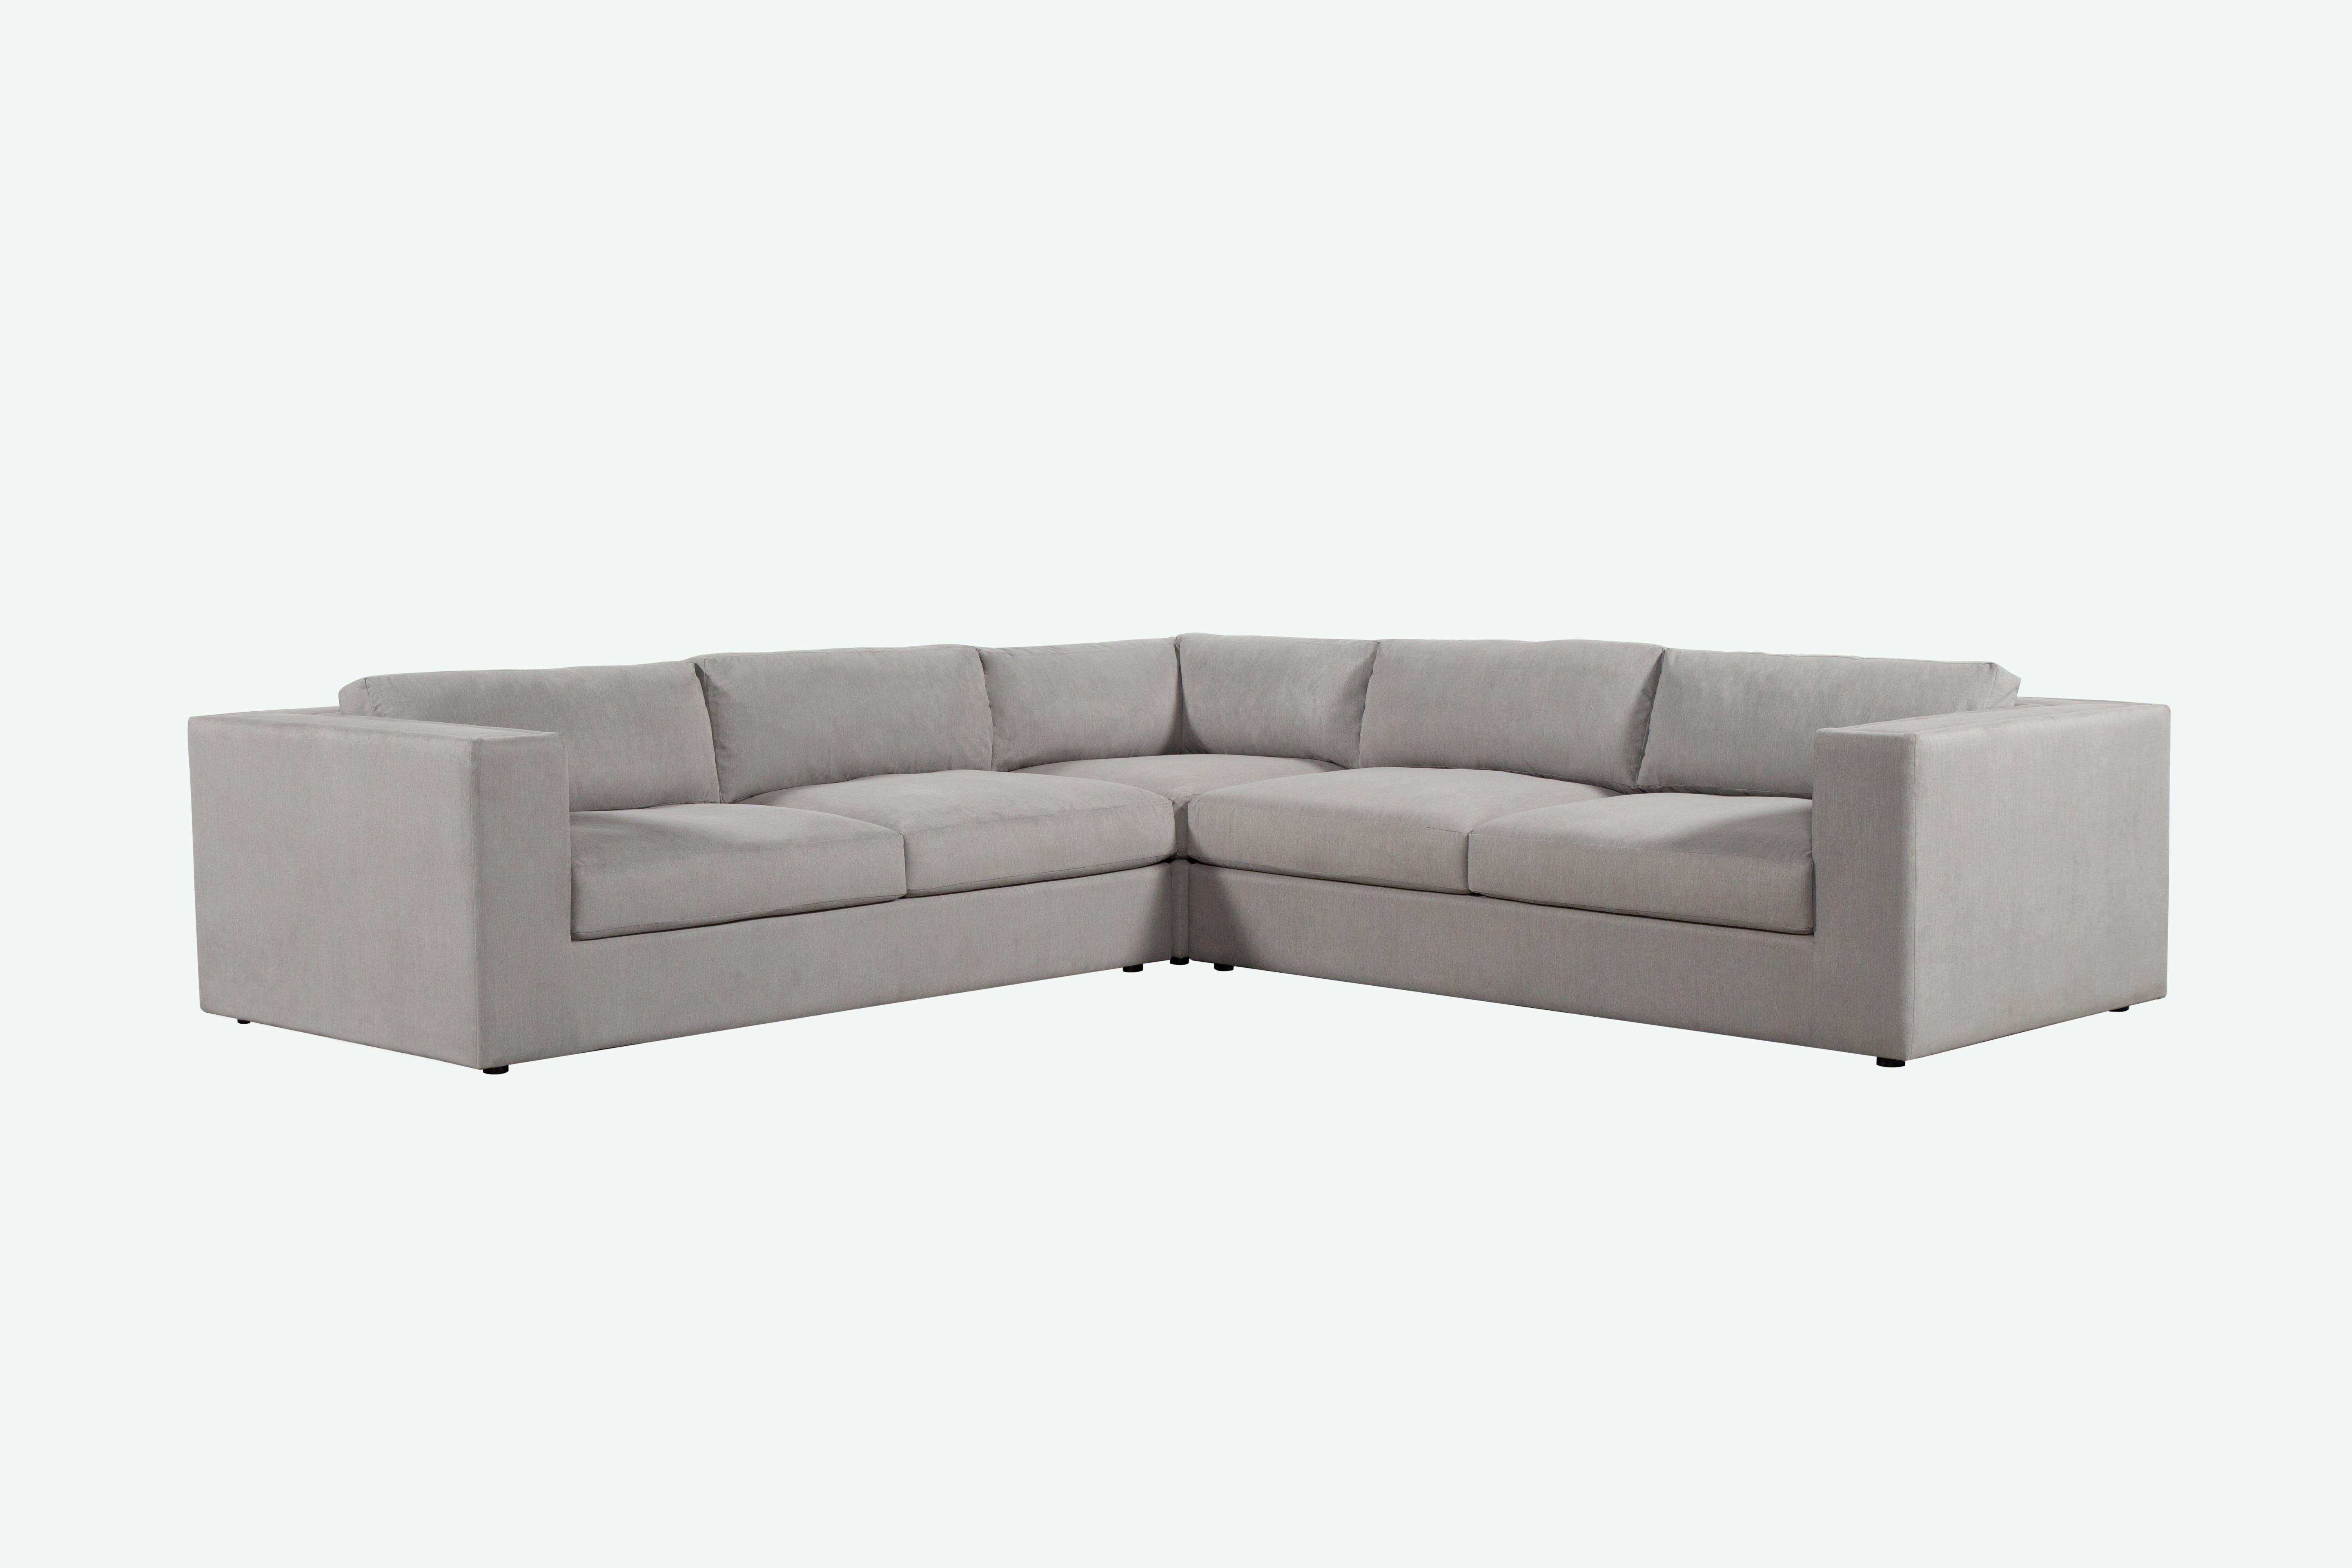 Nate Berkus Just Launched A Home Collection With Hubby Jeremiah Pertaining To Most Current Soane 3 Piece Sectionals By Nate Berkus And Jeremiah Brent (View 12 of 20)